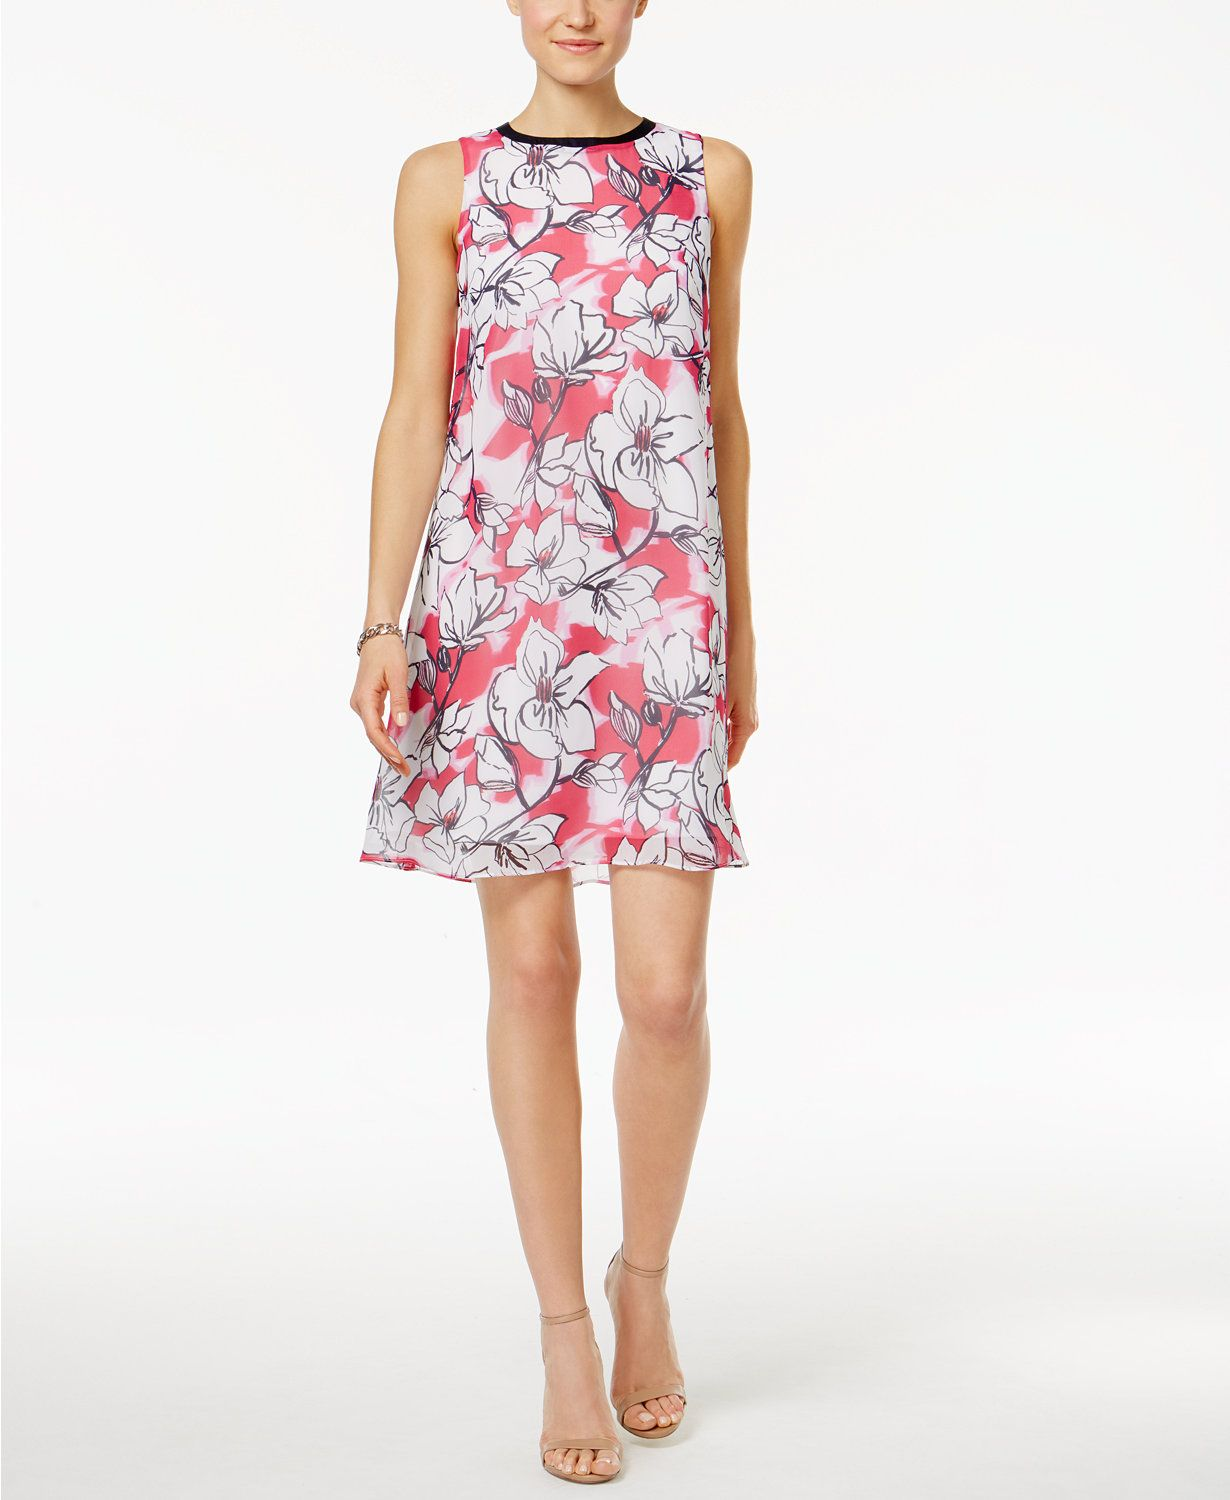 SL Fashions Floral-Print Shift Dress | macys.com | Macy's ...